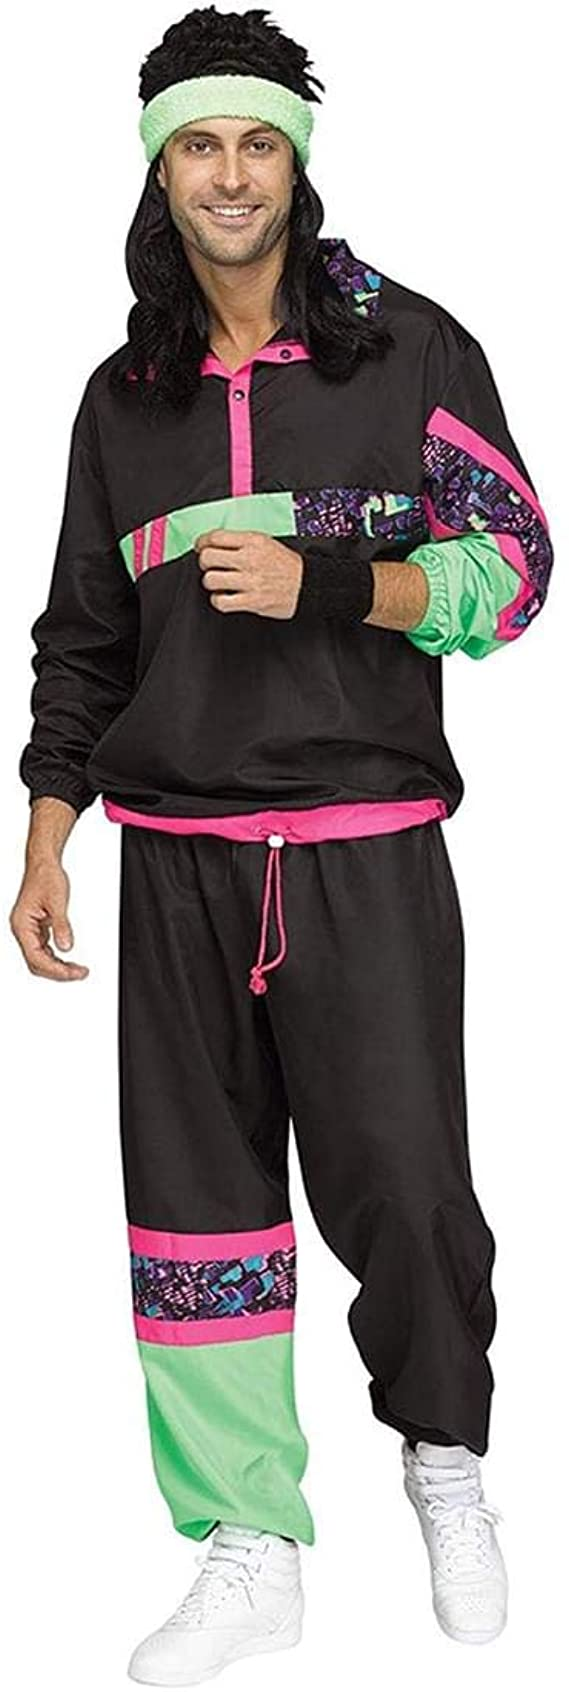 80s Costumes, Outfit Ideas- Girls and Guys Fun World 80s Male Track Suit Adult Costume $34.51 AT vintagedancer.com